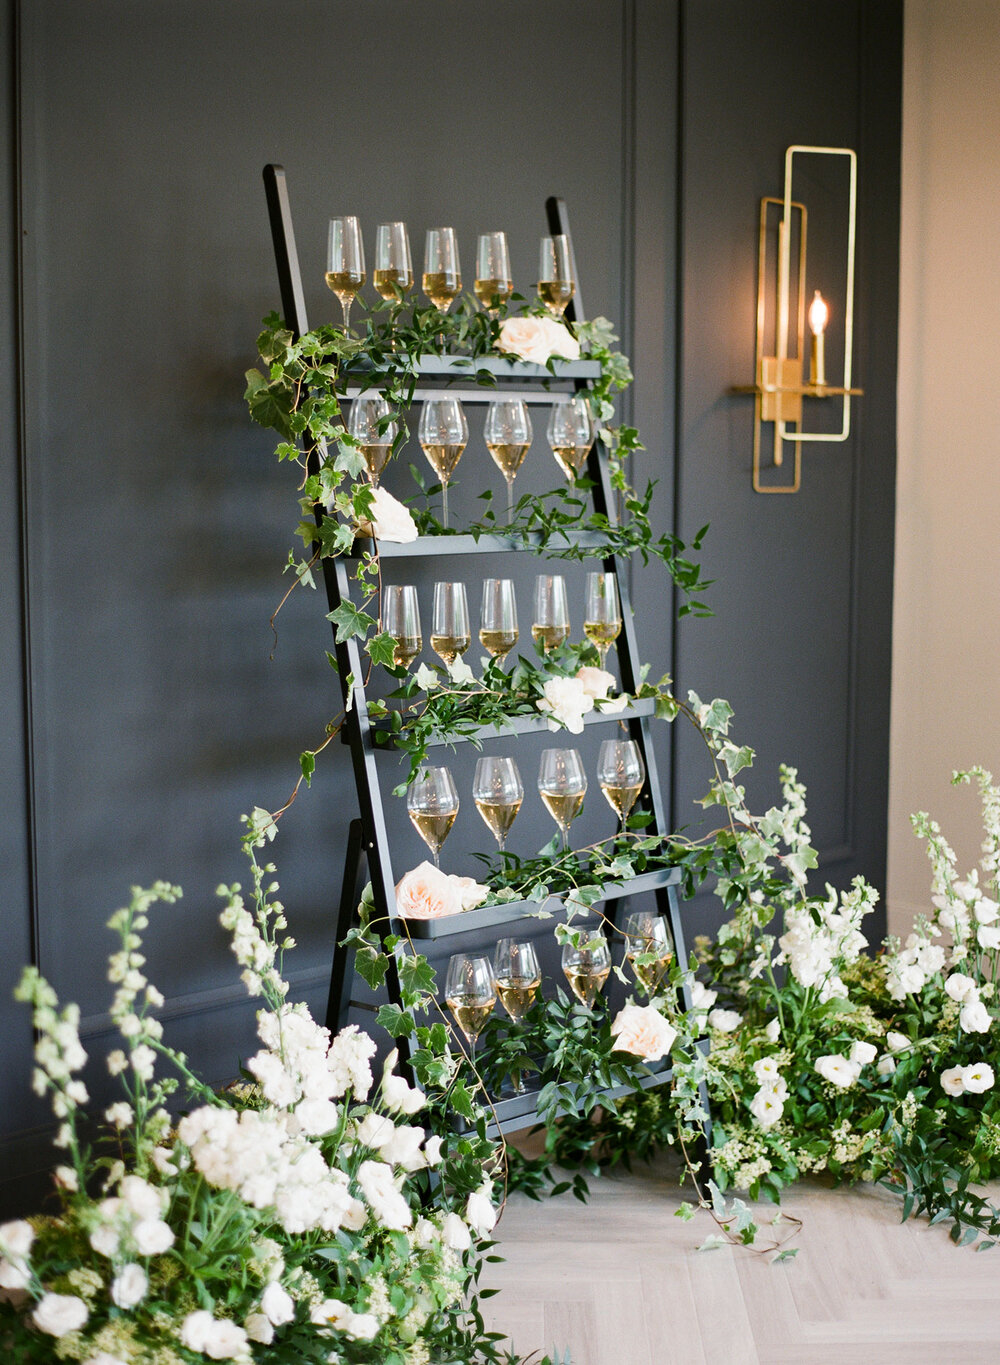 the-gate-house-niagara-on-the-lake-weddings-vineyard-bride-swish-list-photo-6.jpeg